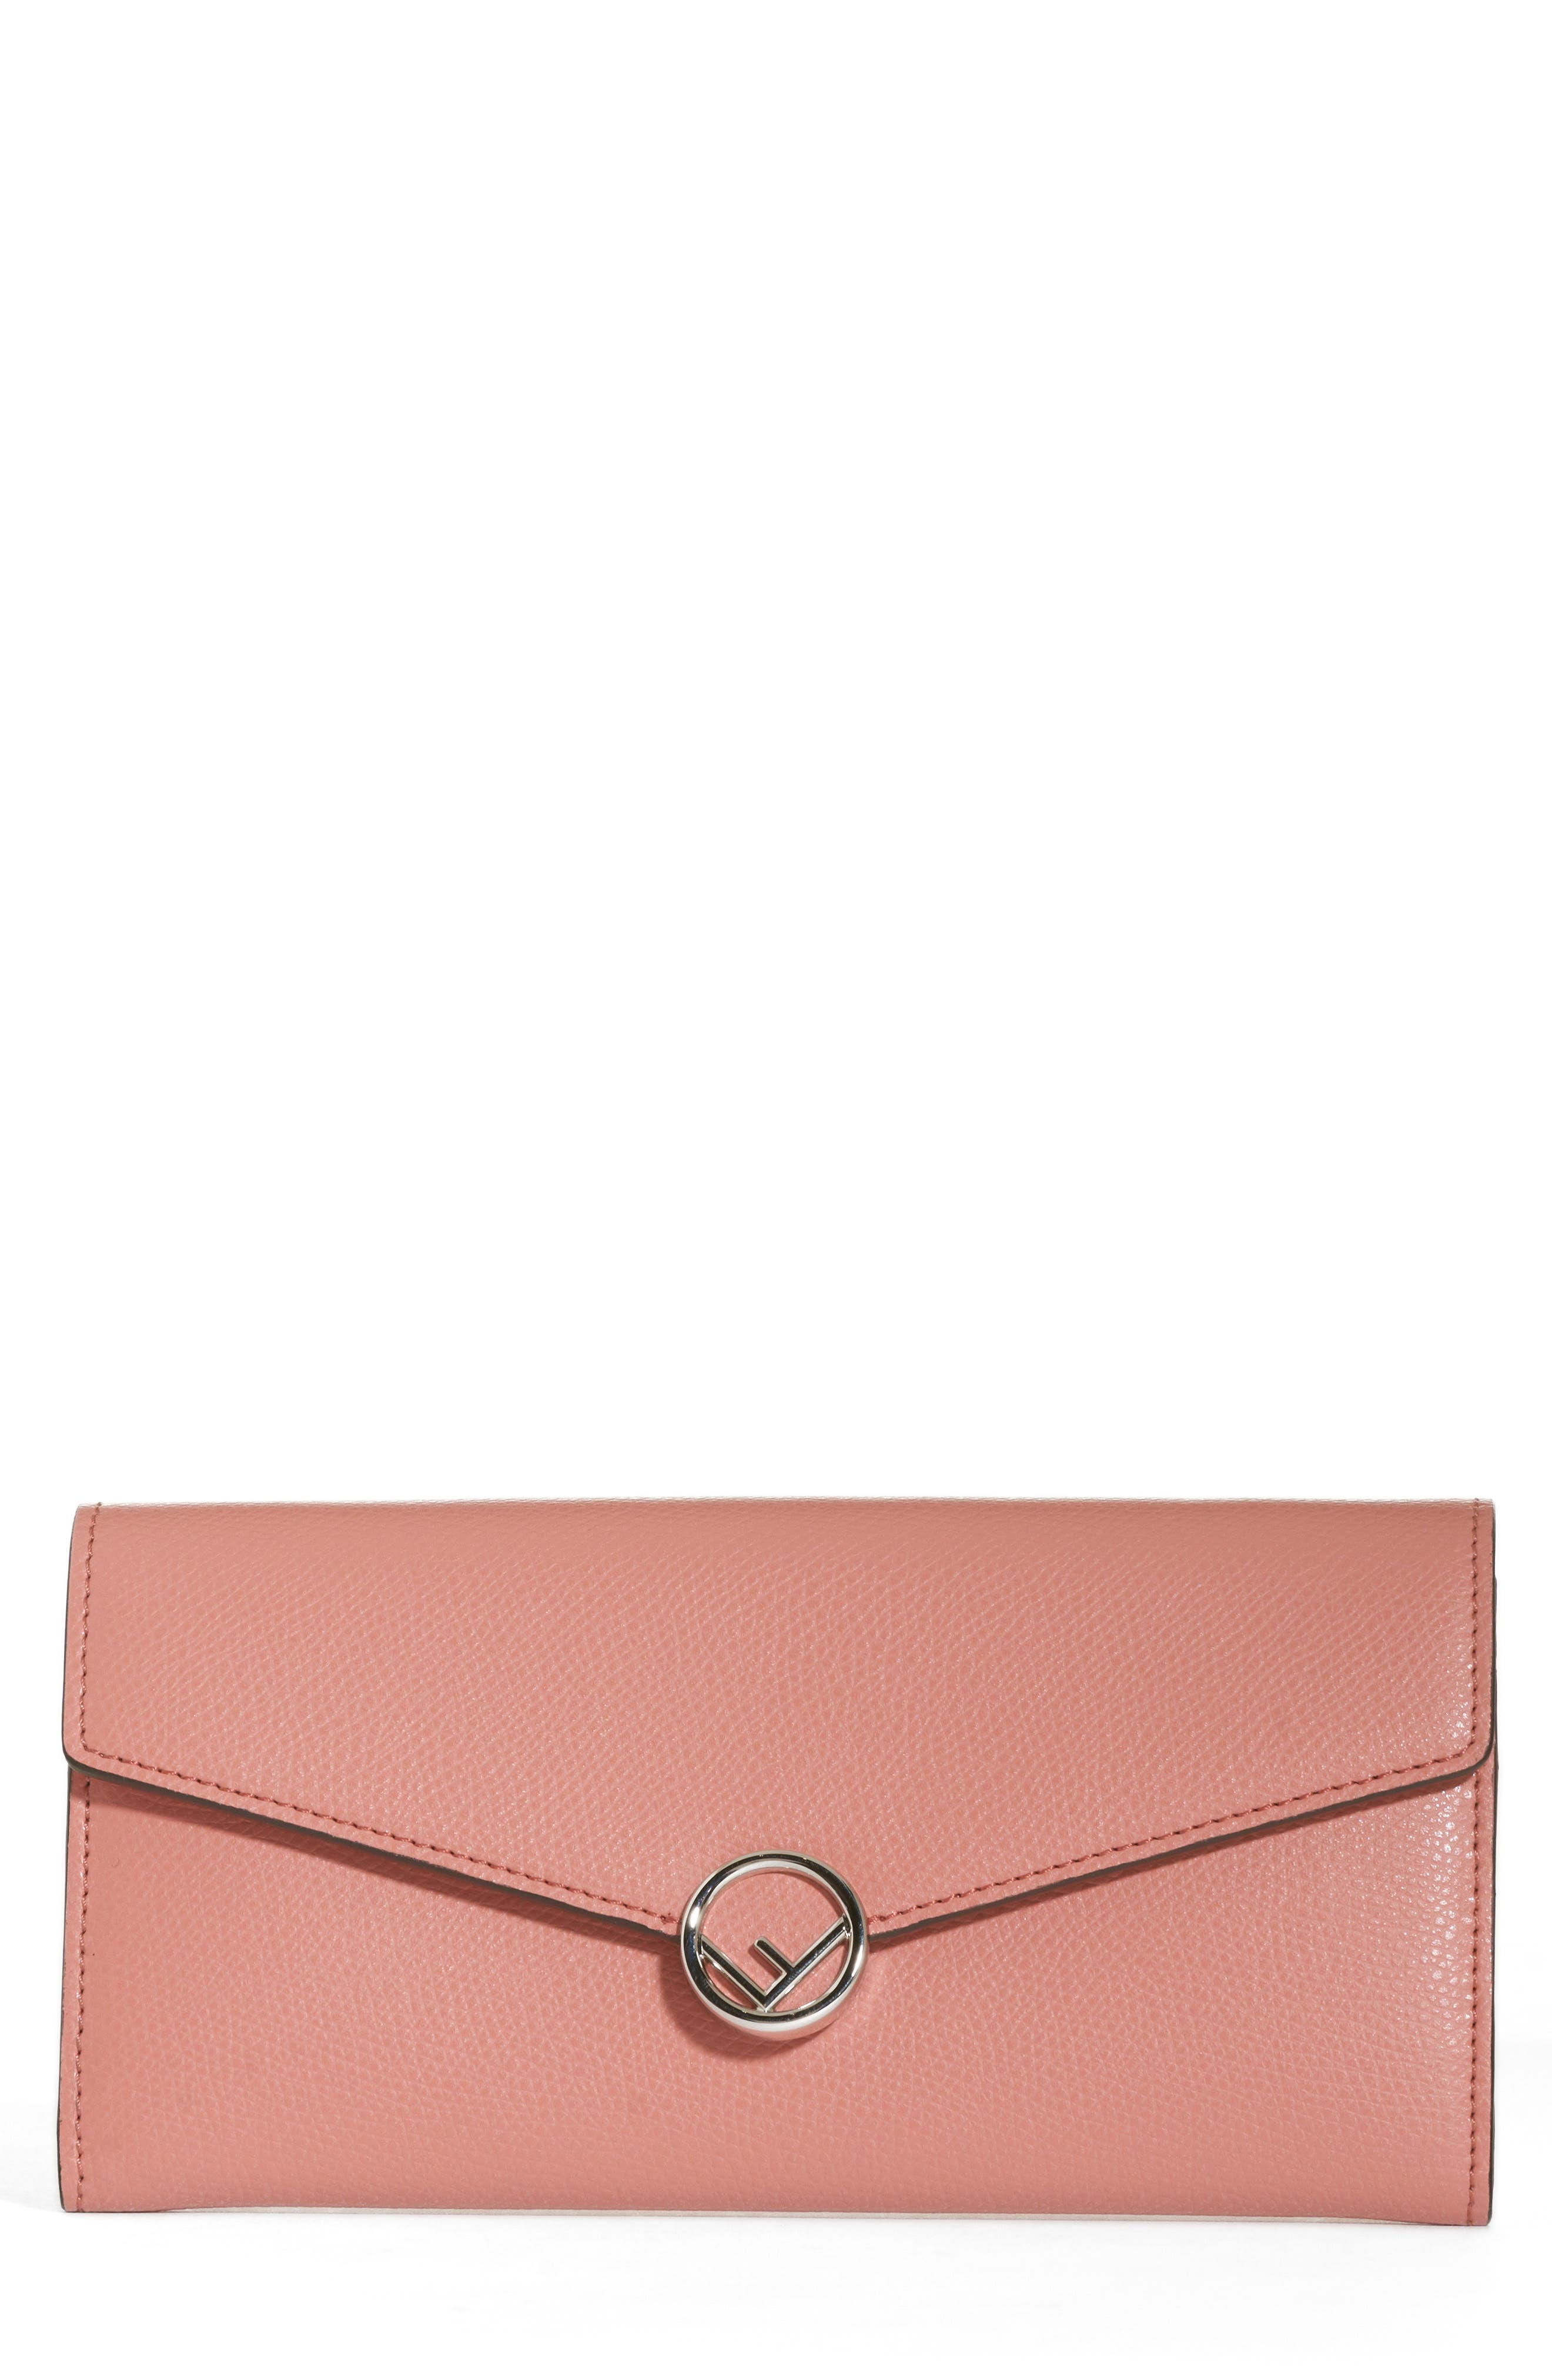 FENDI, Logo Calfskin Leather Continental Wallet on a Chain, Main thumbnail 1, color, MACARON/ PALLADIO